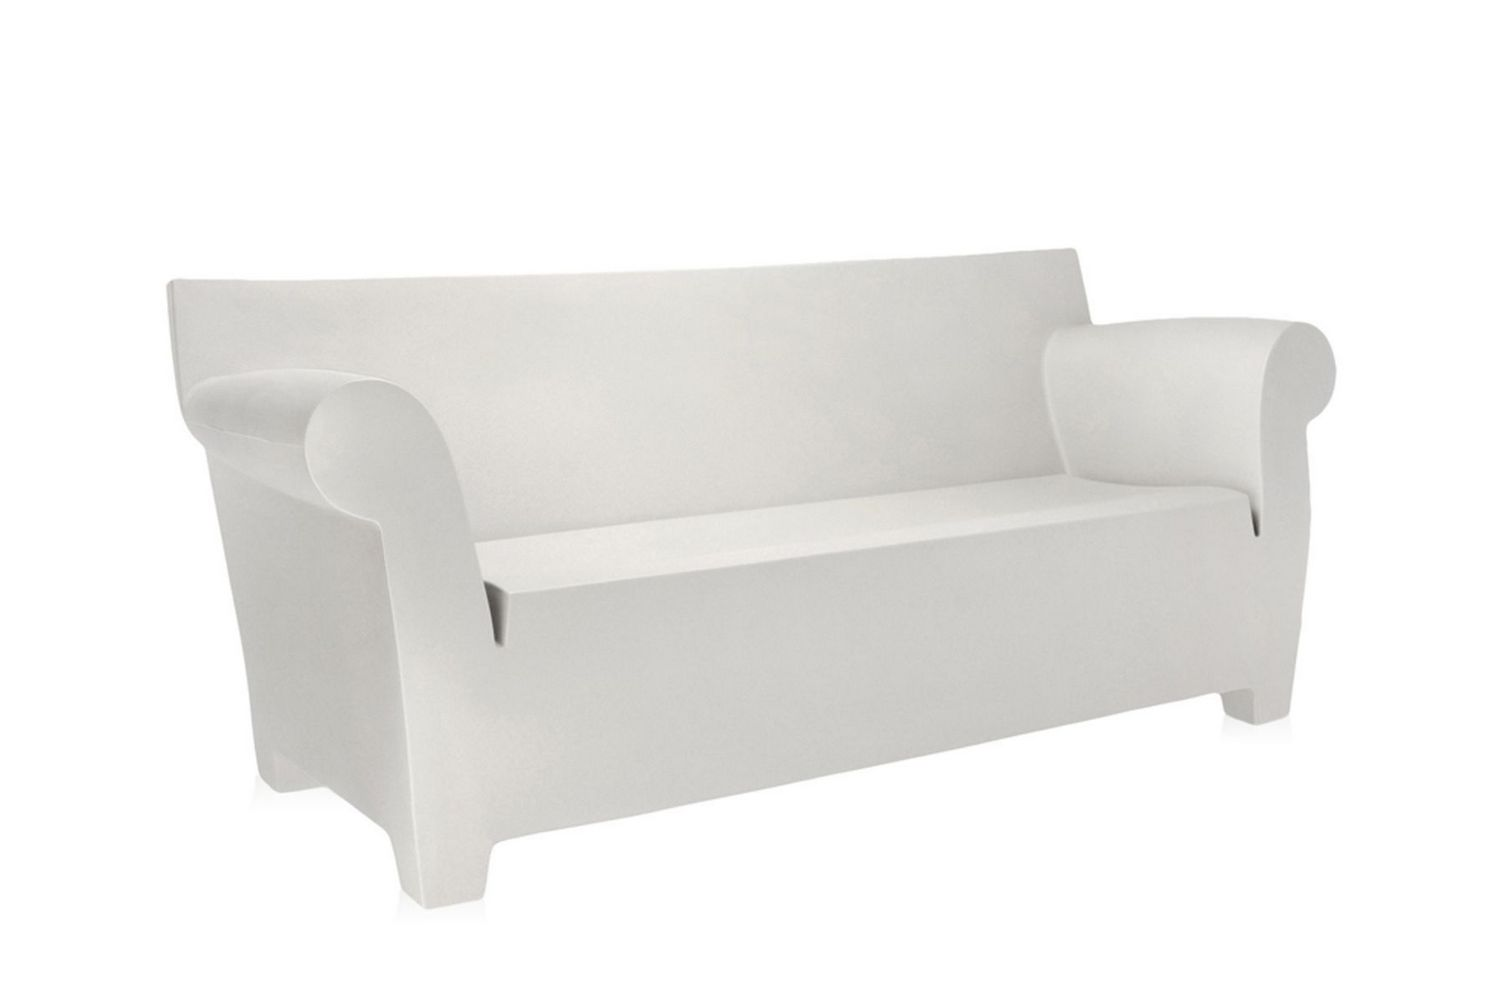 bubble club chair replica high quality outdoor folding chairs sofa by philippe starck for kartell space